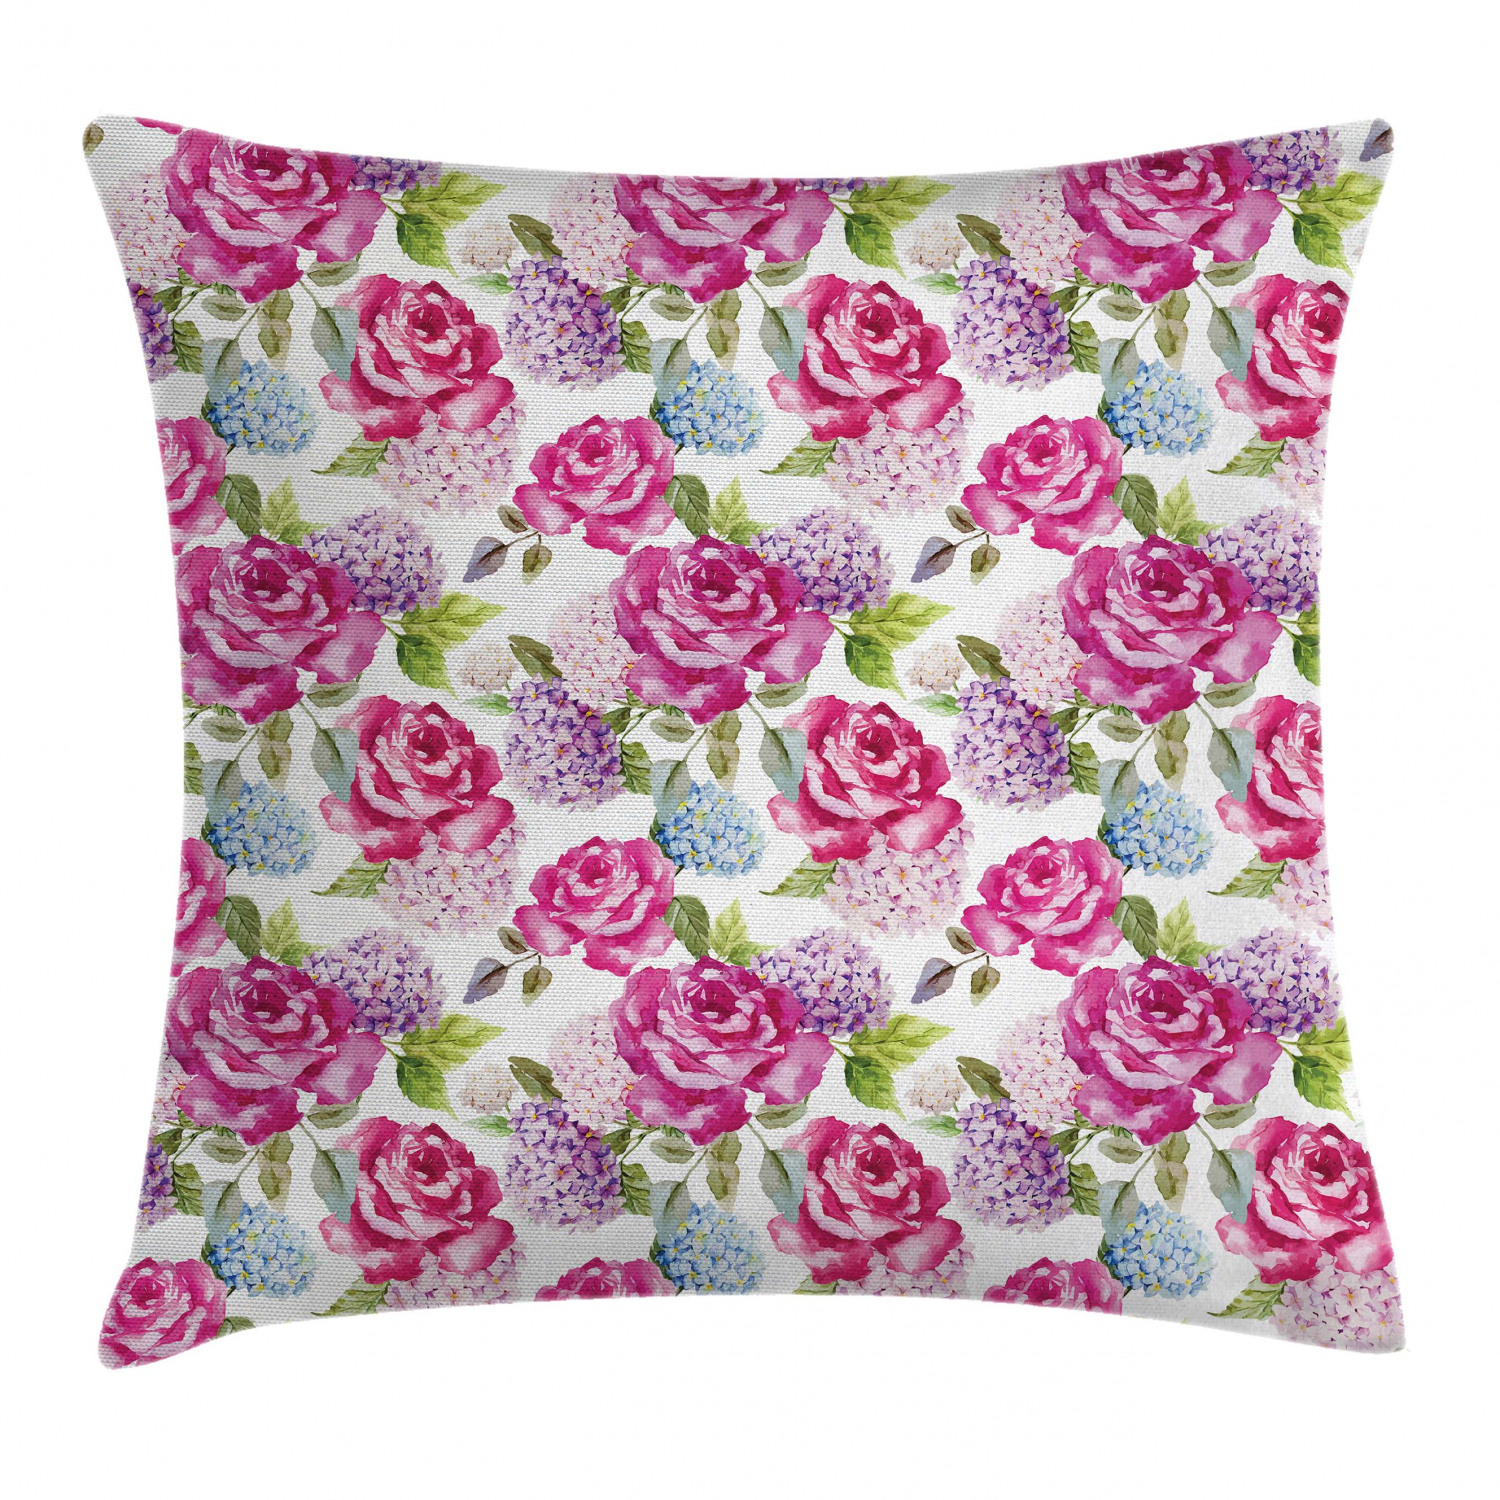 Home furniture diy modern form throw pillow cases cushion covers home decor 8 sizes ambesonne